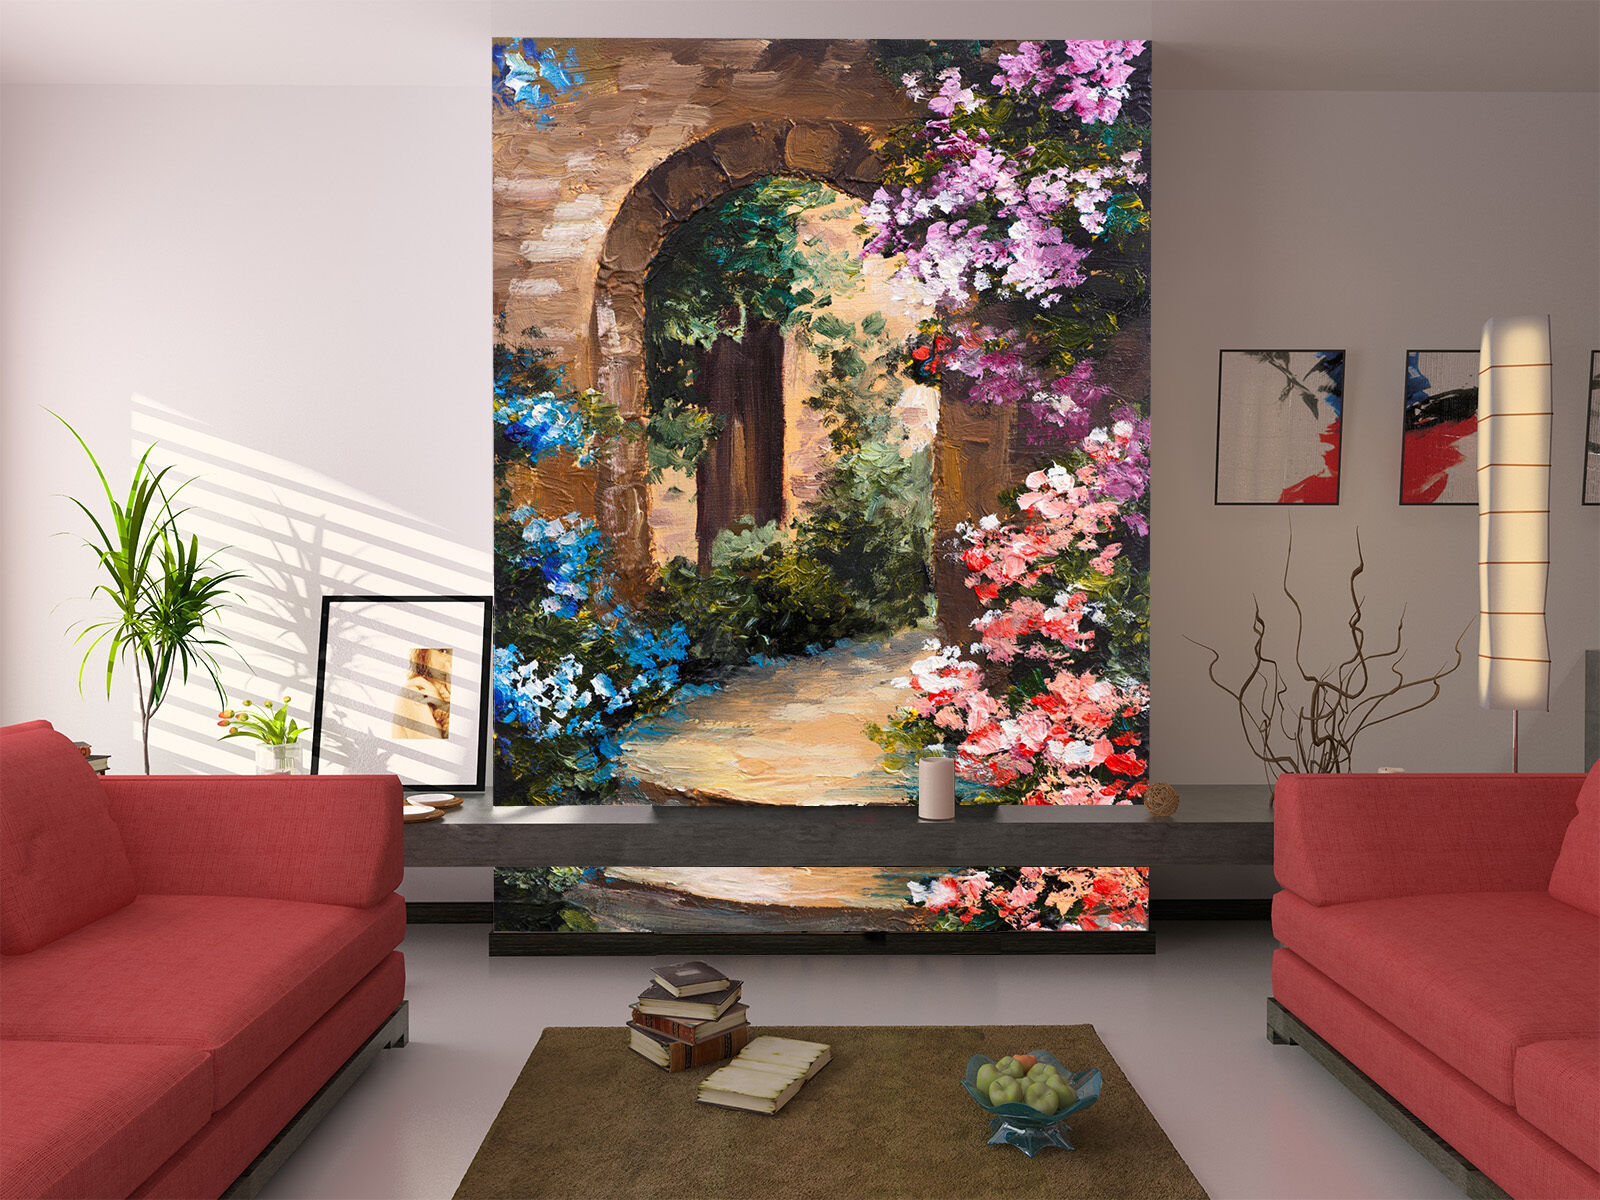 3D Flower Vines Arches Wall Paper Murals Wall Print Decal Wall Deco AJ WALLPAPE